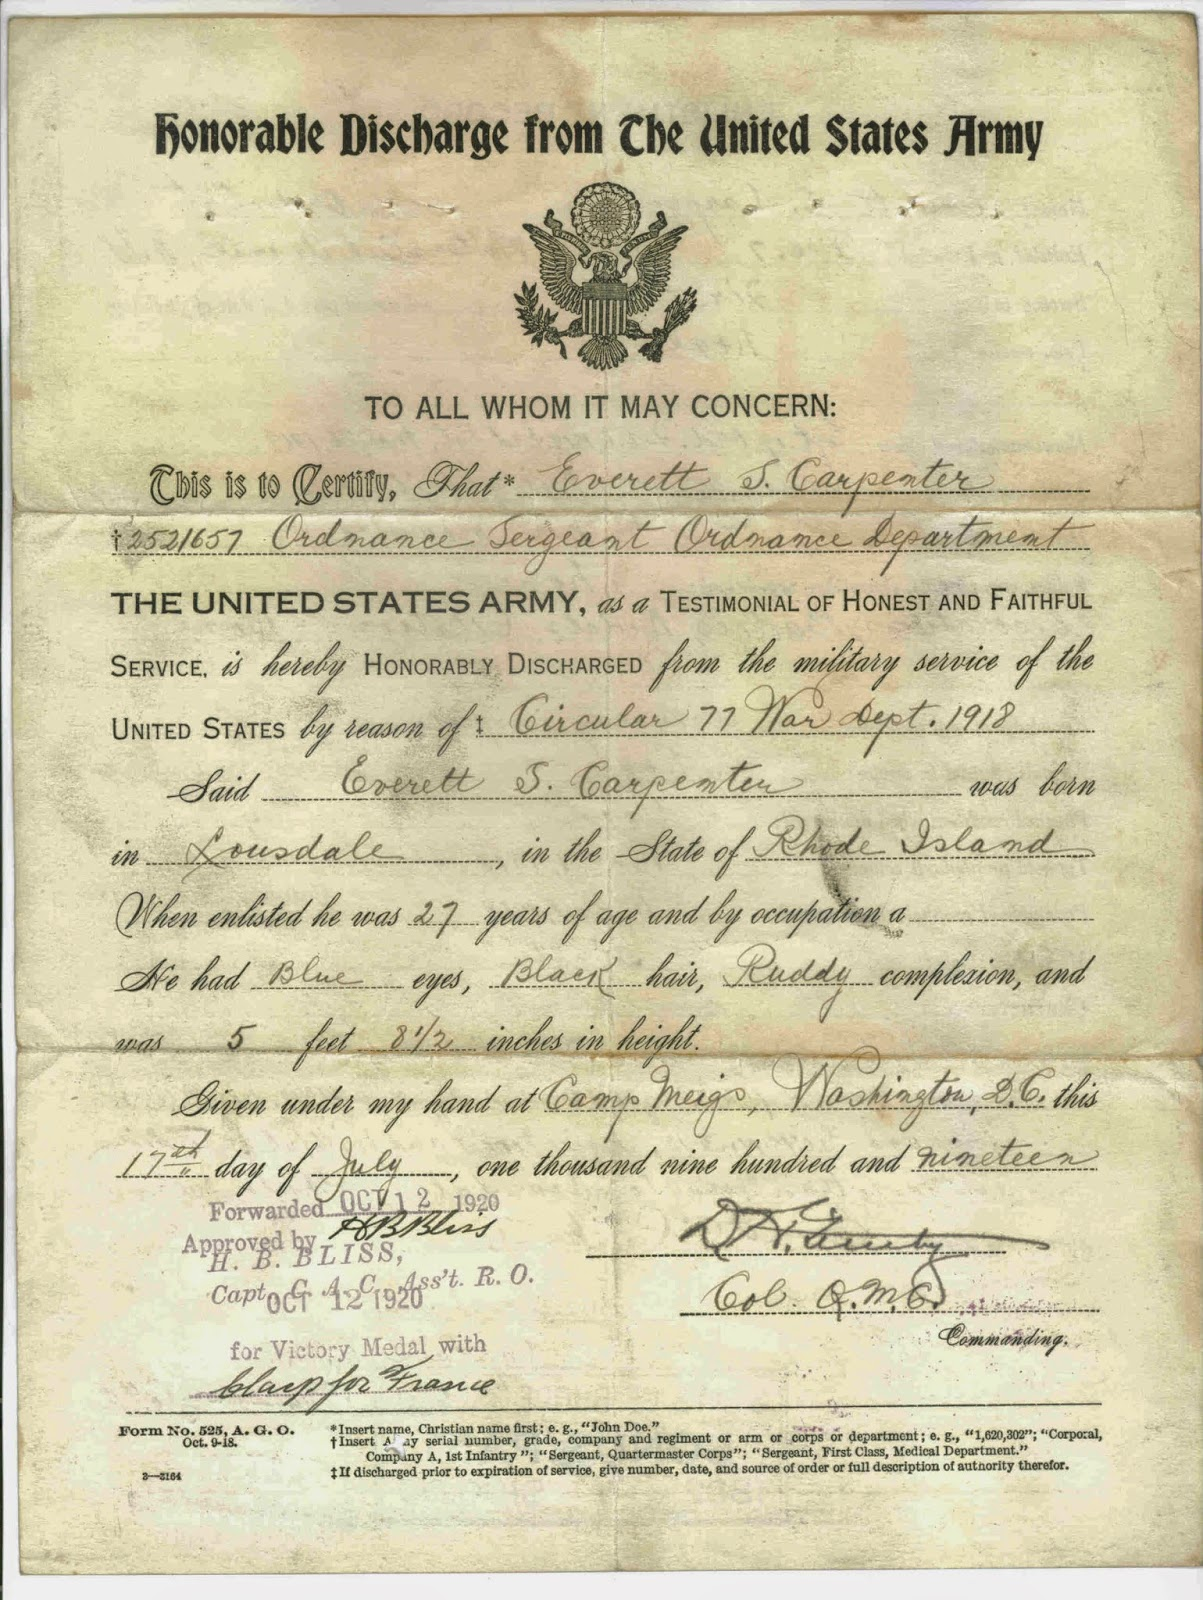 Us army honorable discharge certificate company chart template us army honorable discharge certificate xflitez Choice Image